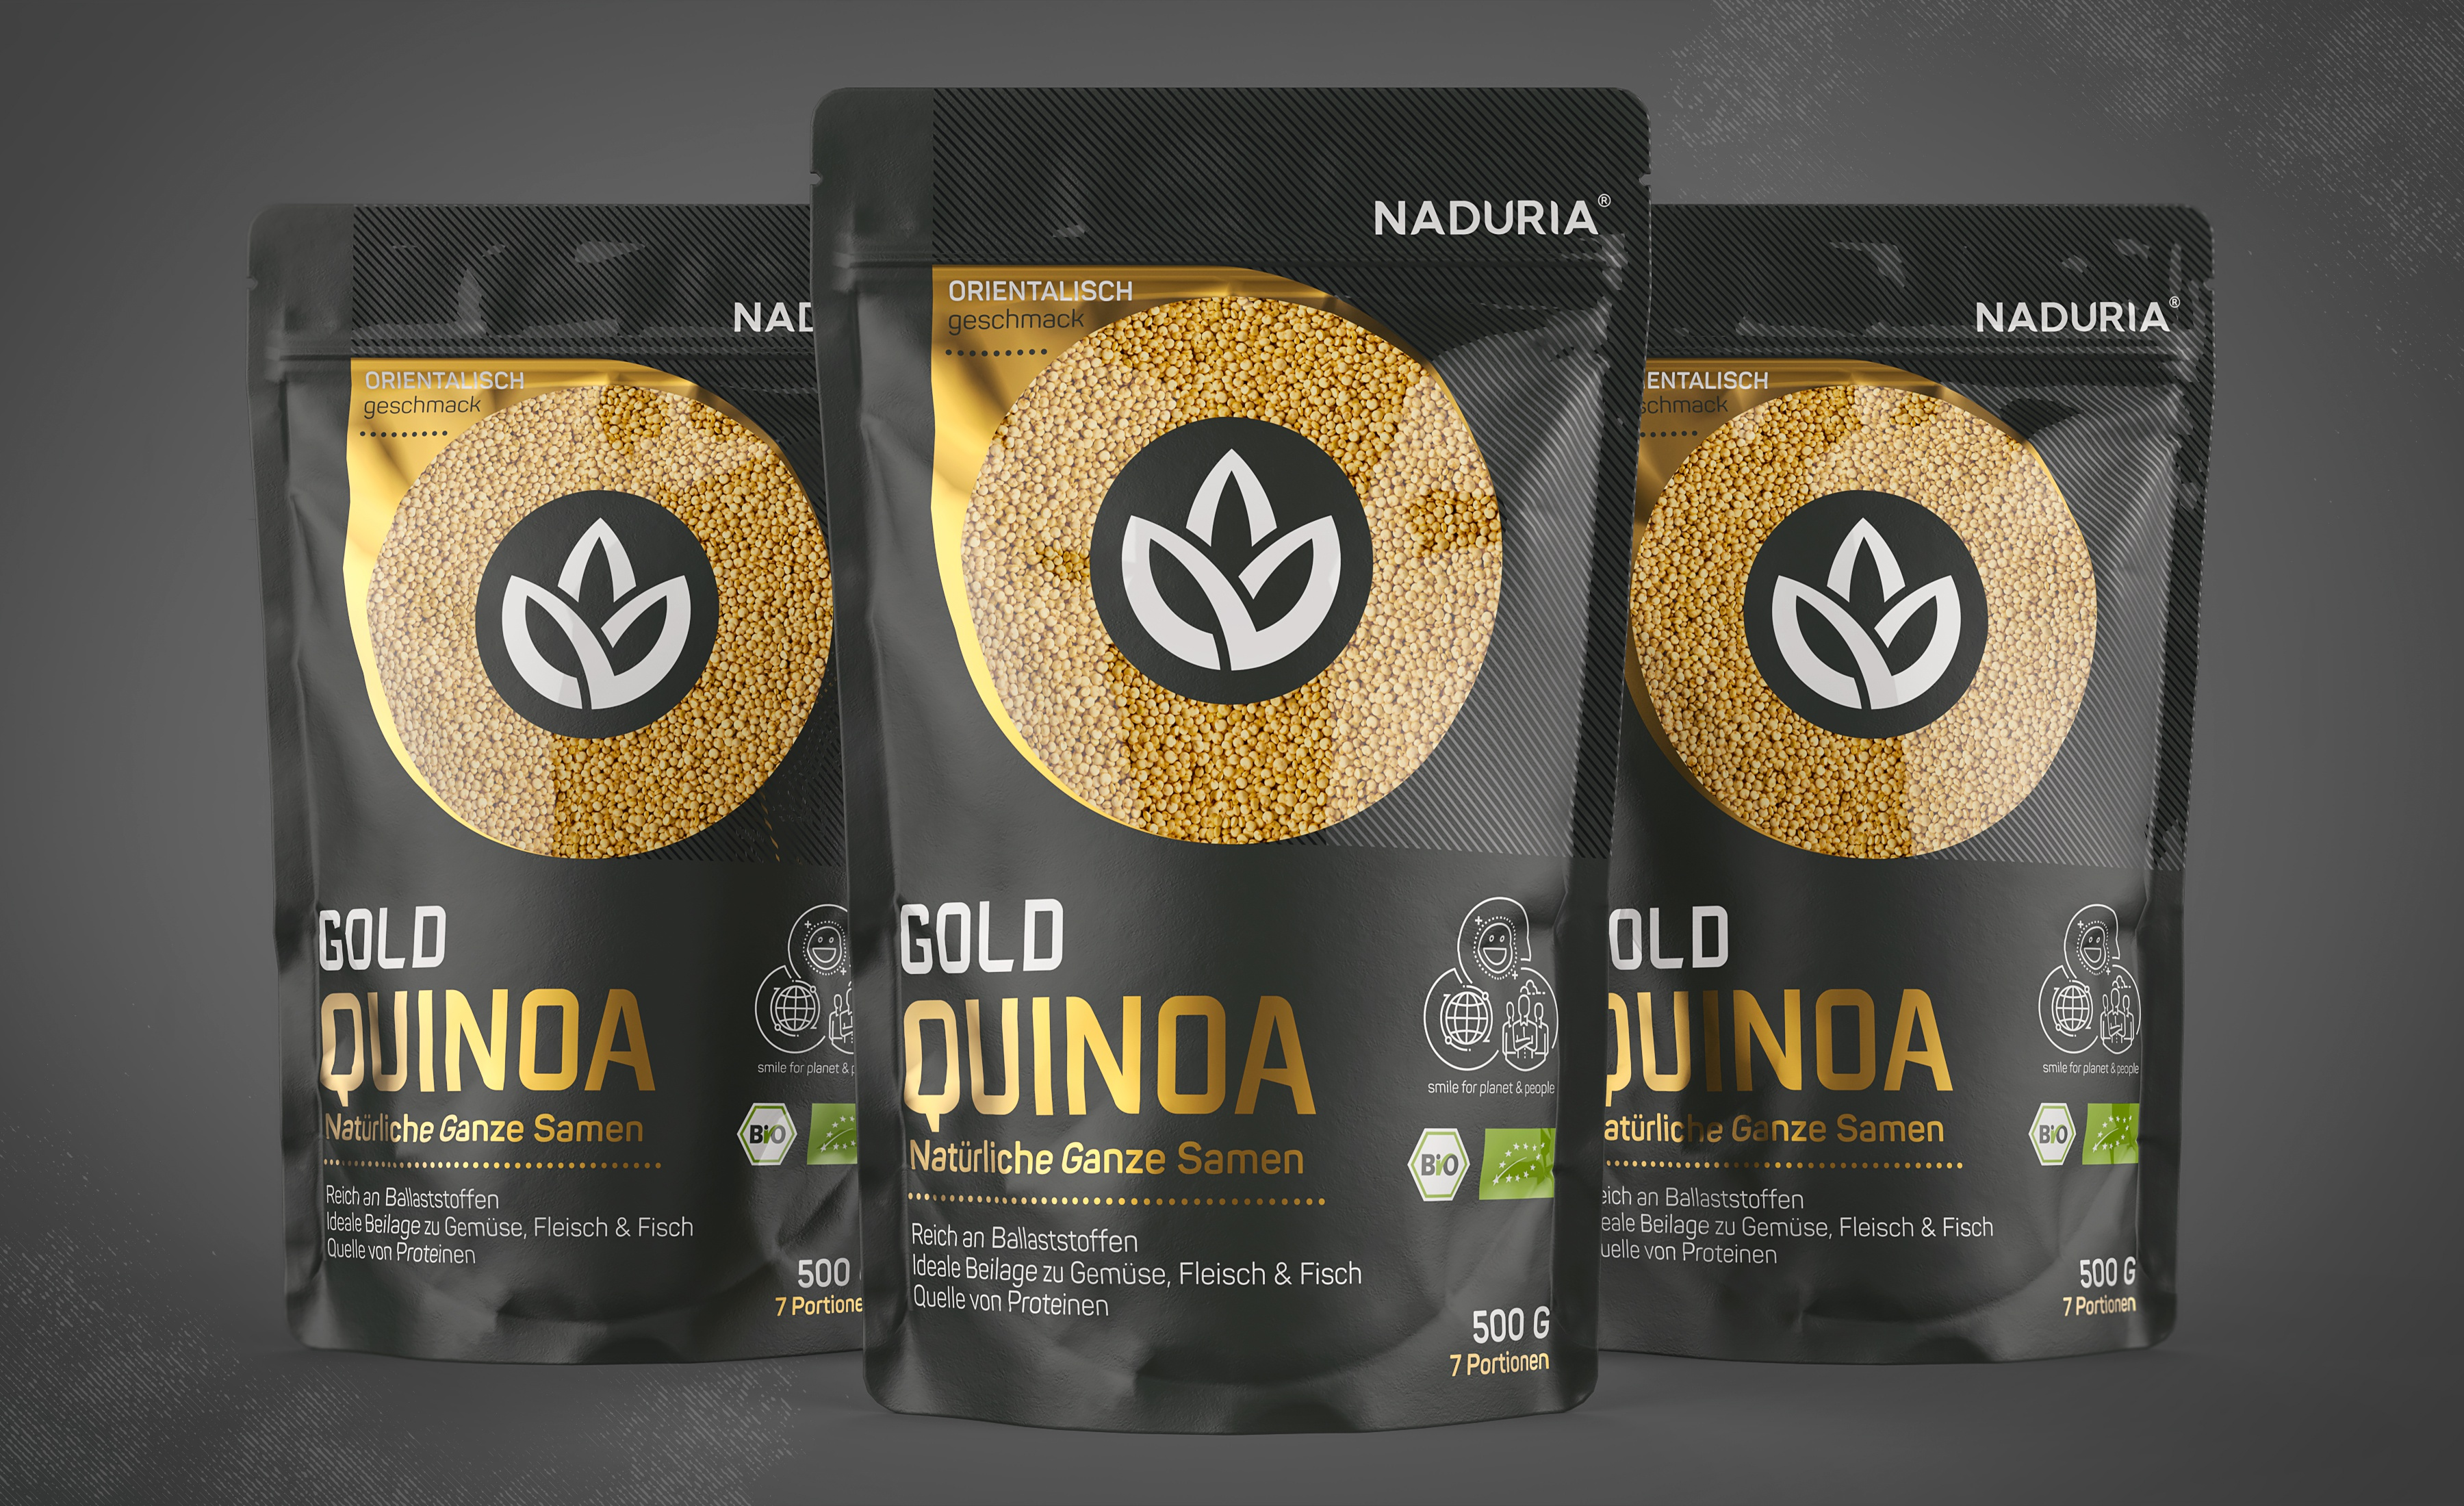 Naduria     quinoa gold   stand up pouch 500g   prototype concept v.1.1